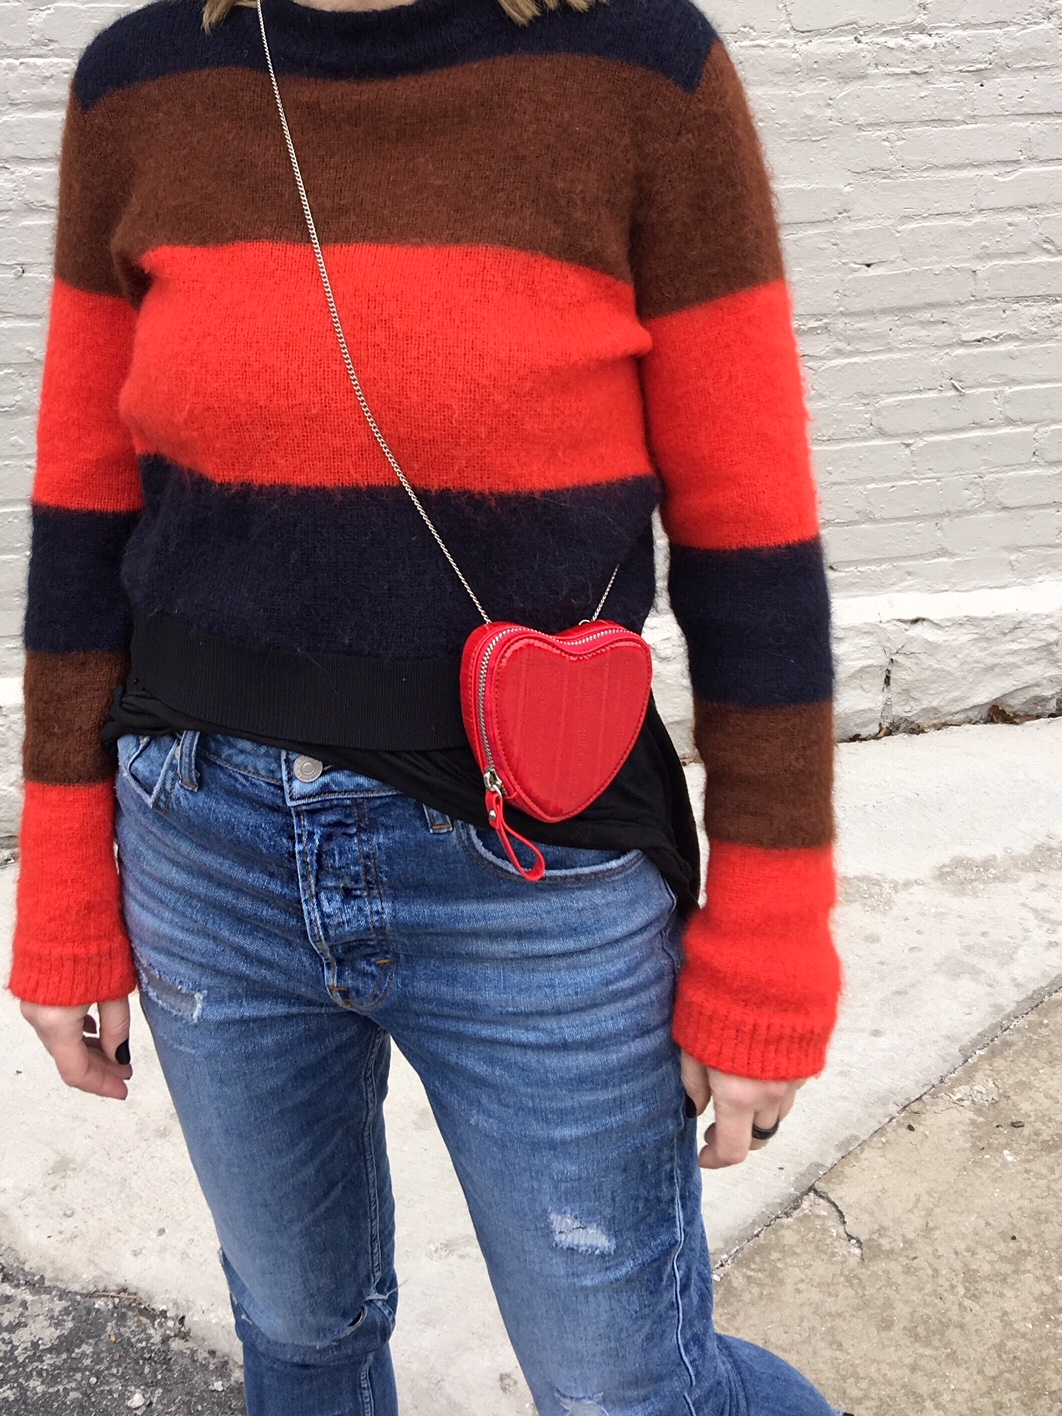 A red striped sweater and a heart shaped bag for Valentine's Day